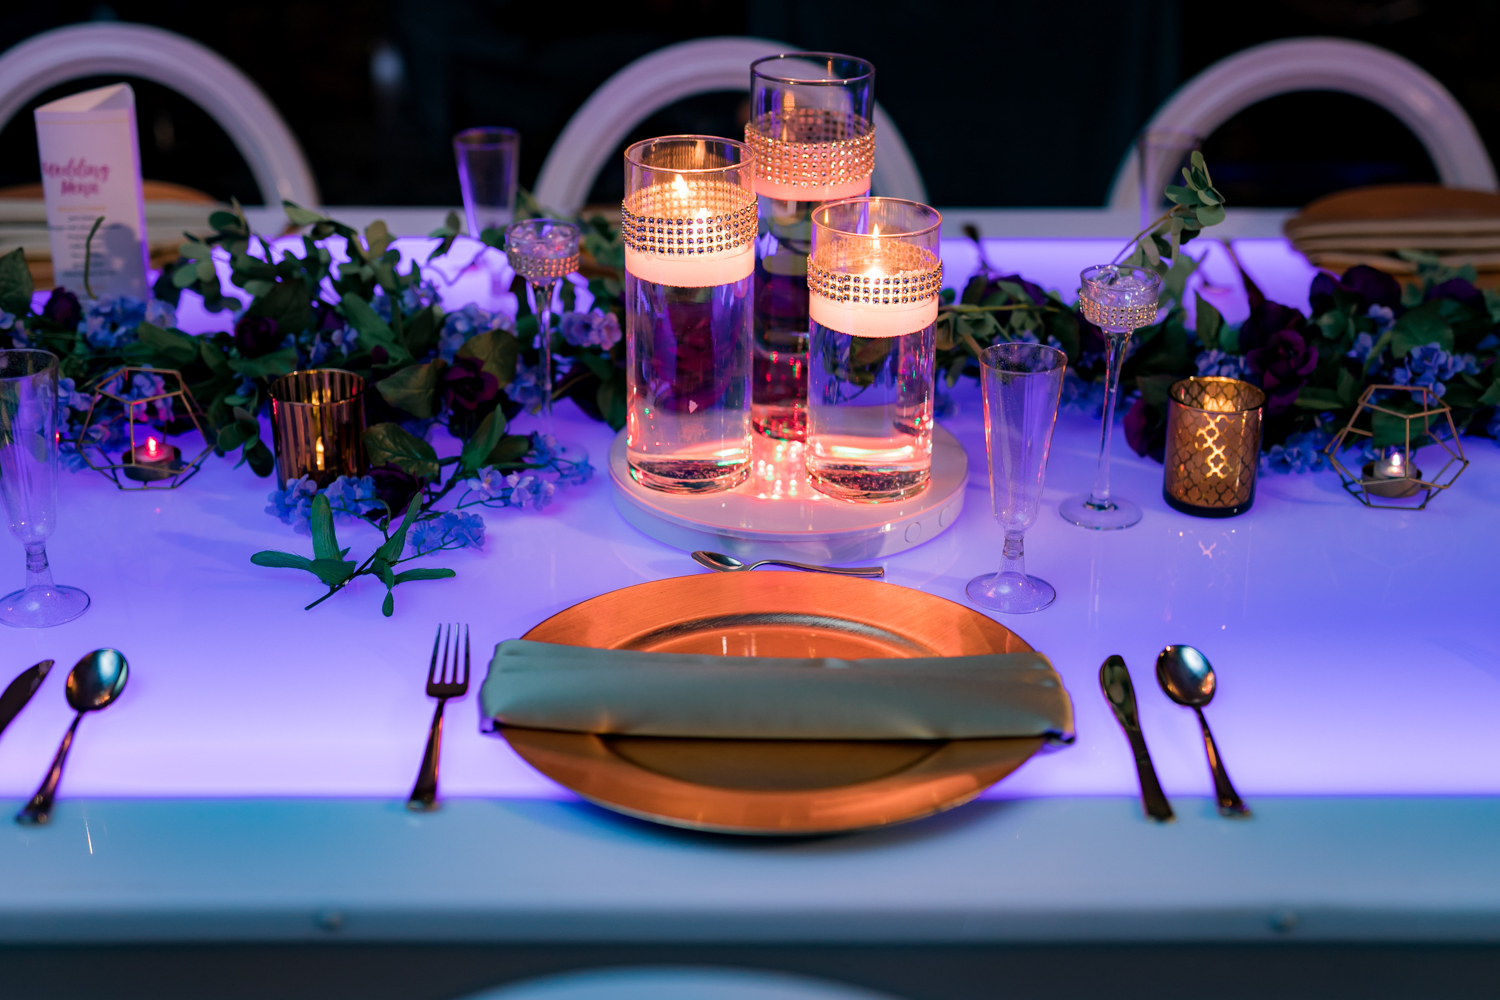 Purple wedding reception table lit with led lighting and accented with gold decor.